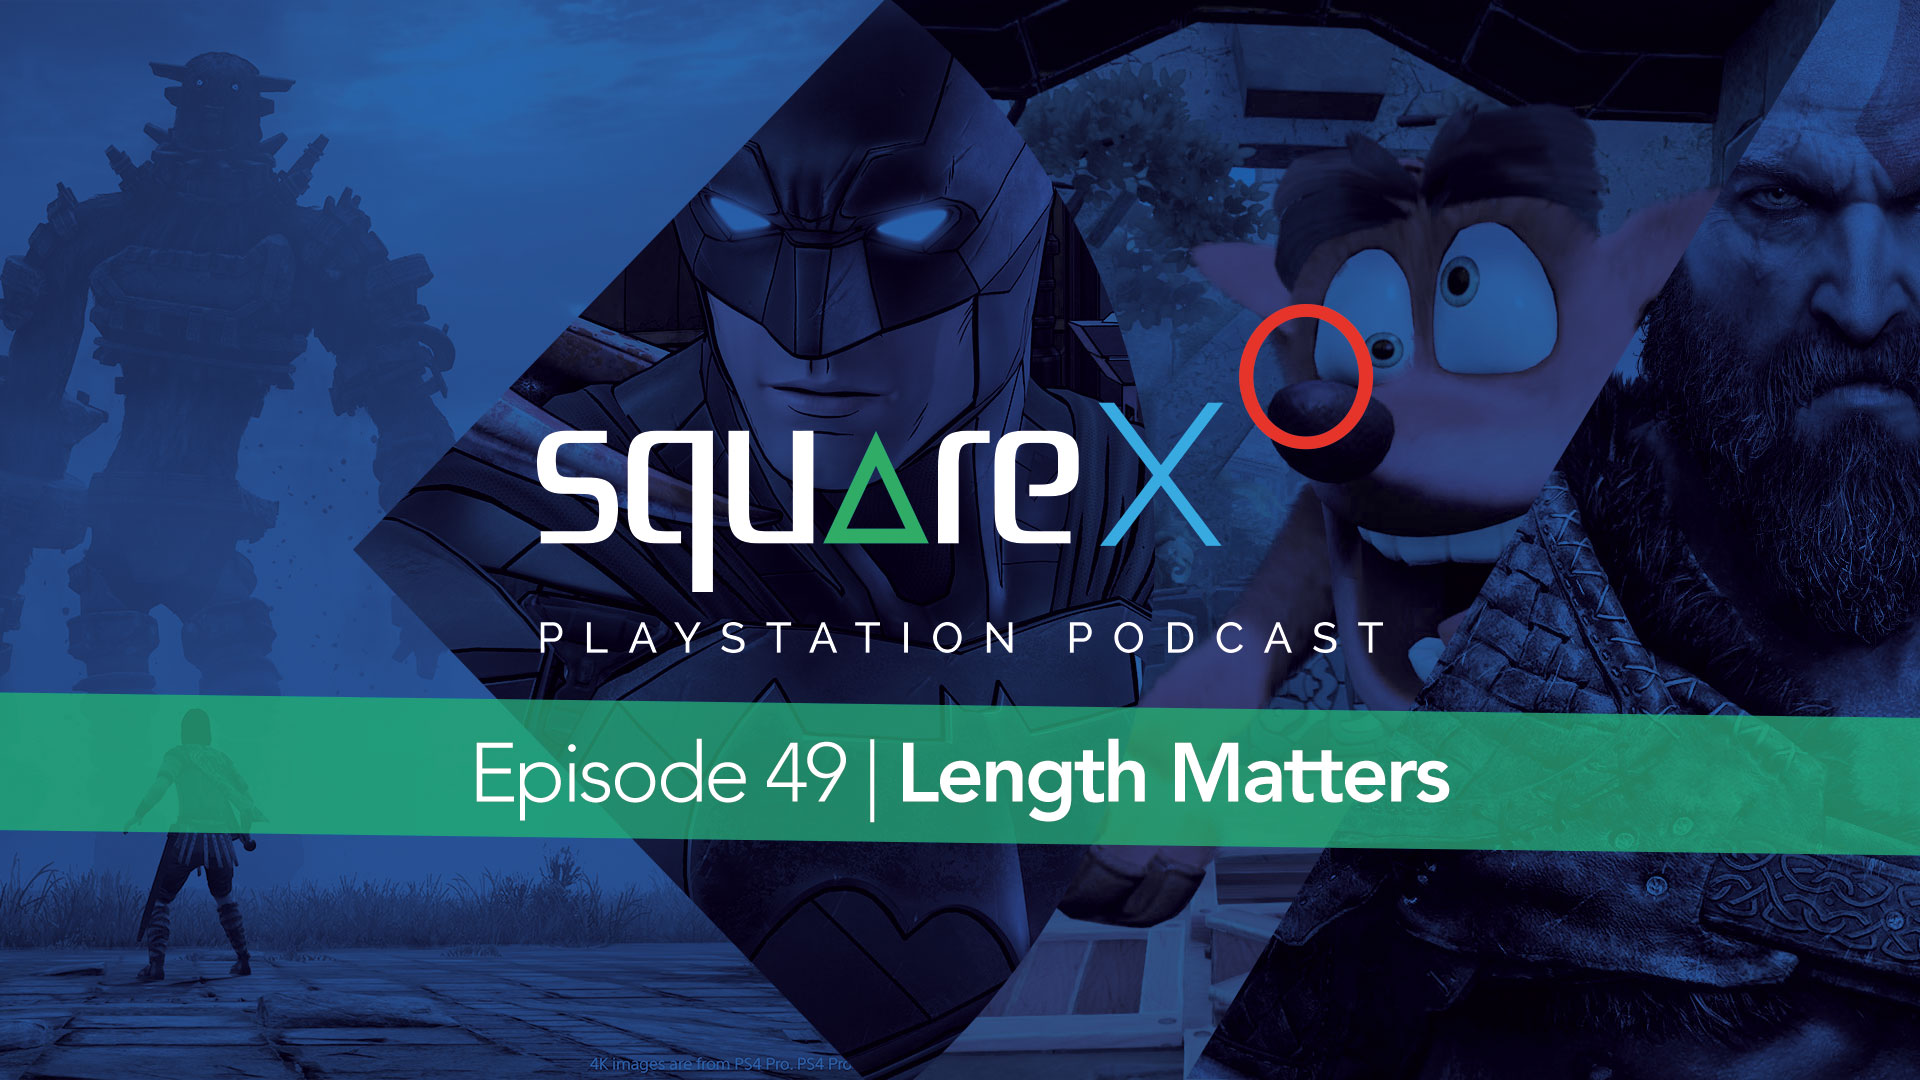 Episode 49 | Length Matters